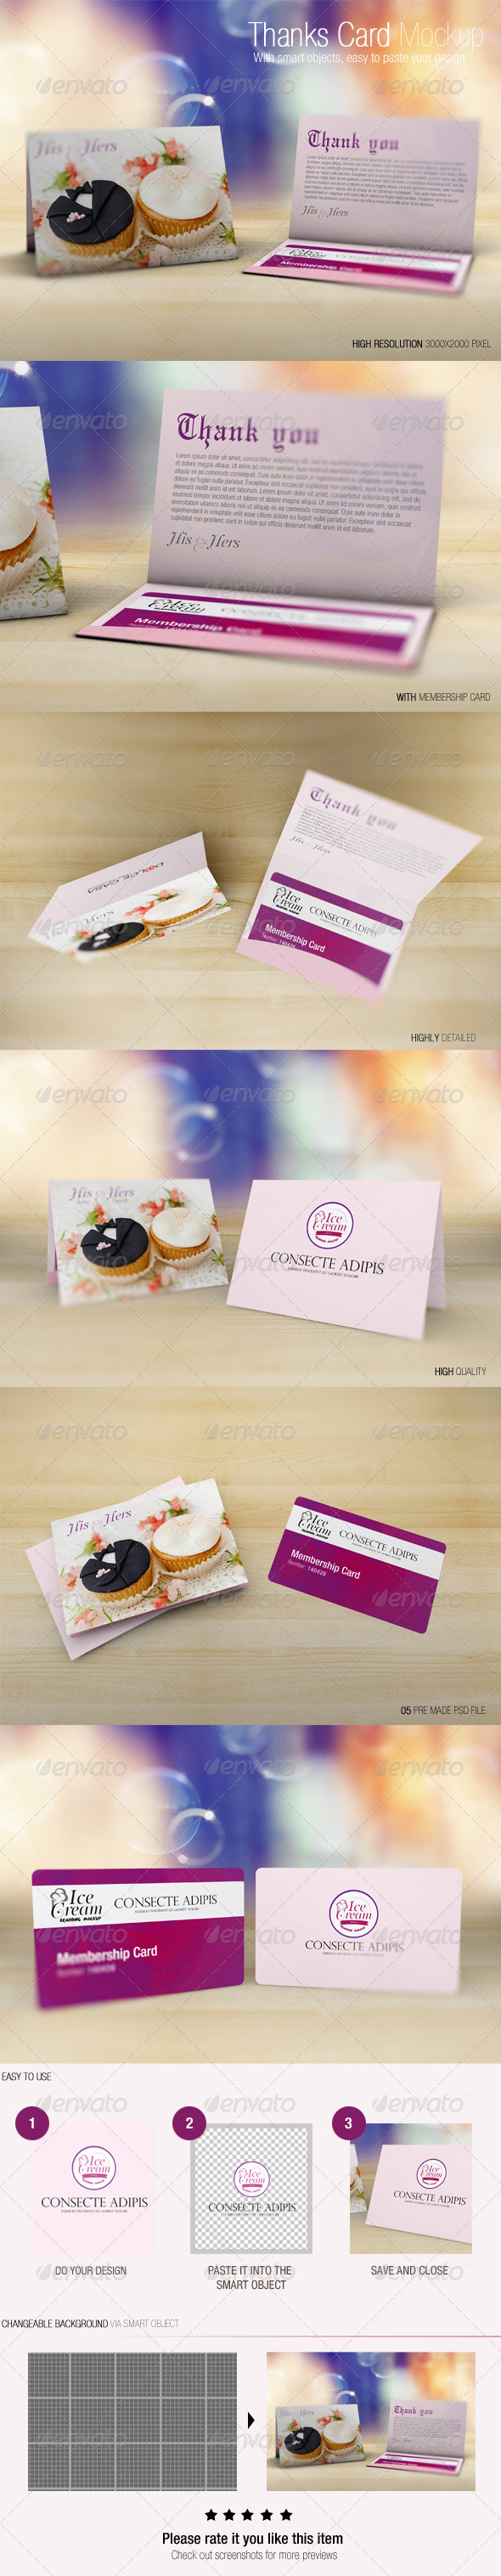 GraphicRiver Thanks Card Mockup 7384555